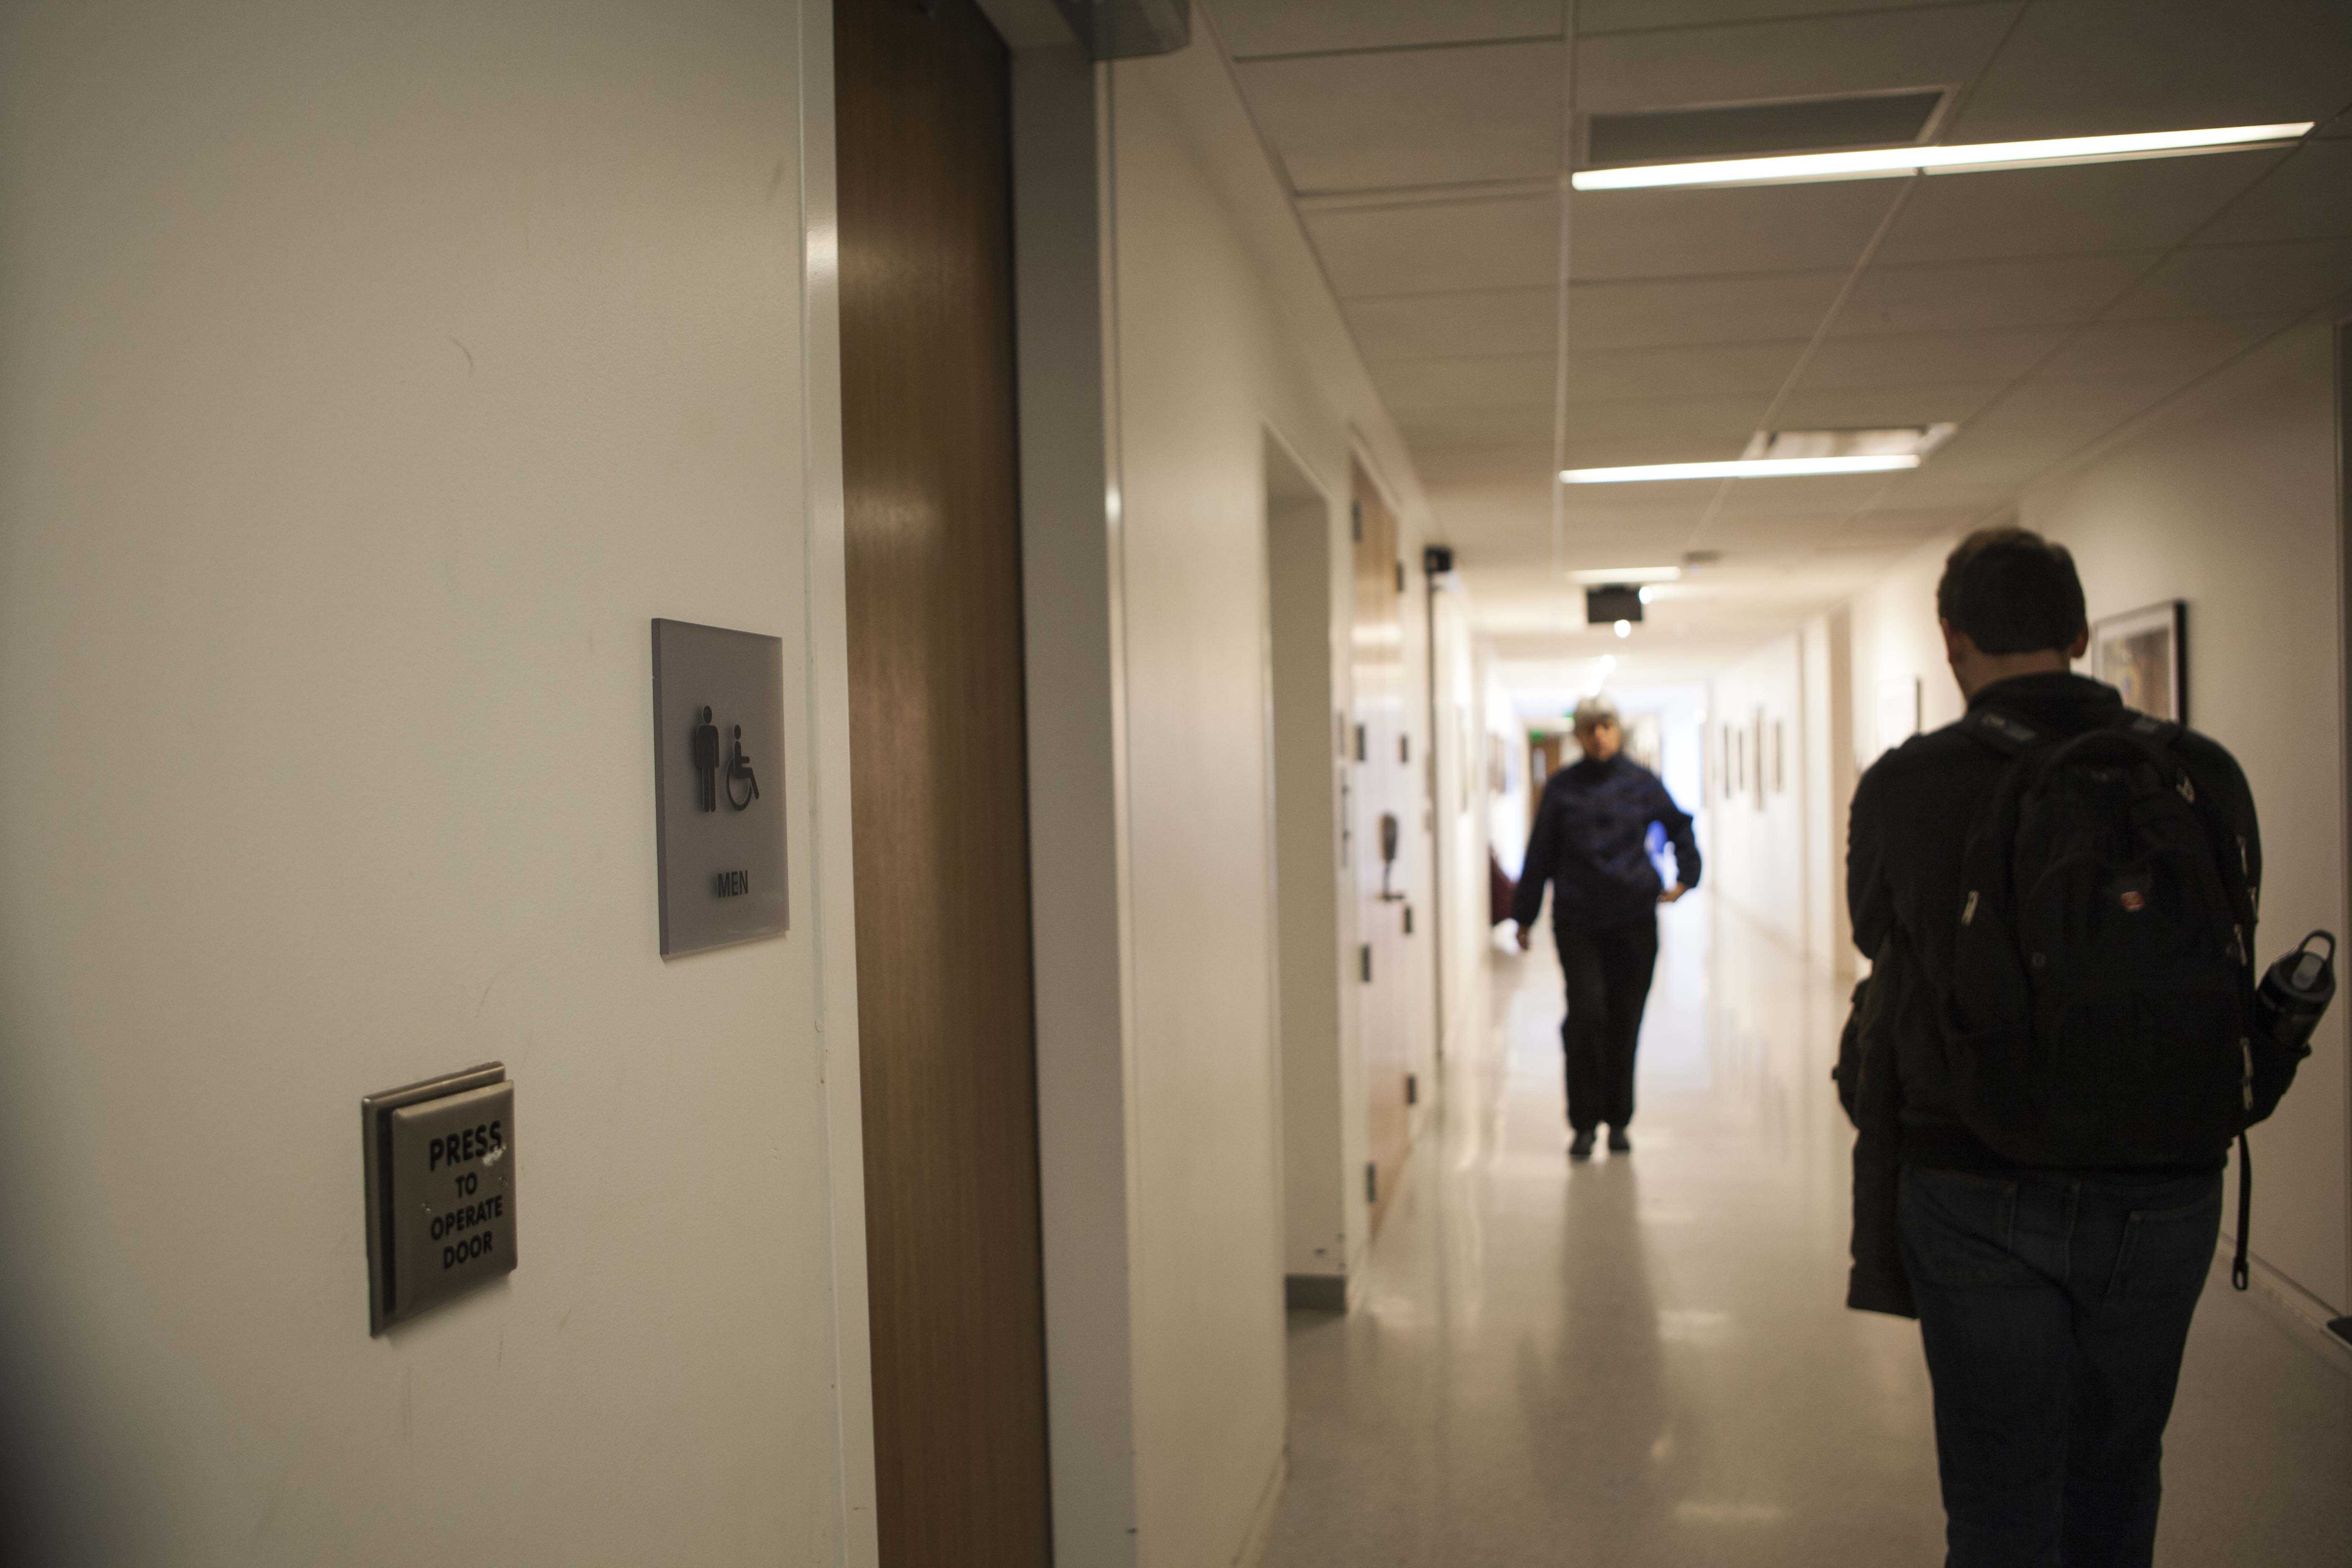 Students pass a men's restroom in Bibbins Hall, a Conservatory building that has no gender-neutral bathrooms. Renovations this summer will address this issue as gender-neutral bathrooms will be included on the first- and third-floors of the building.